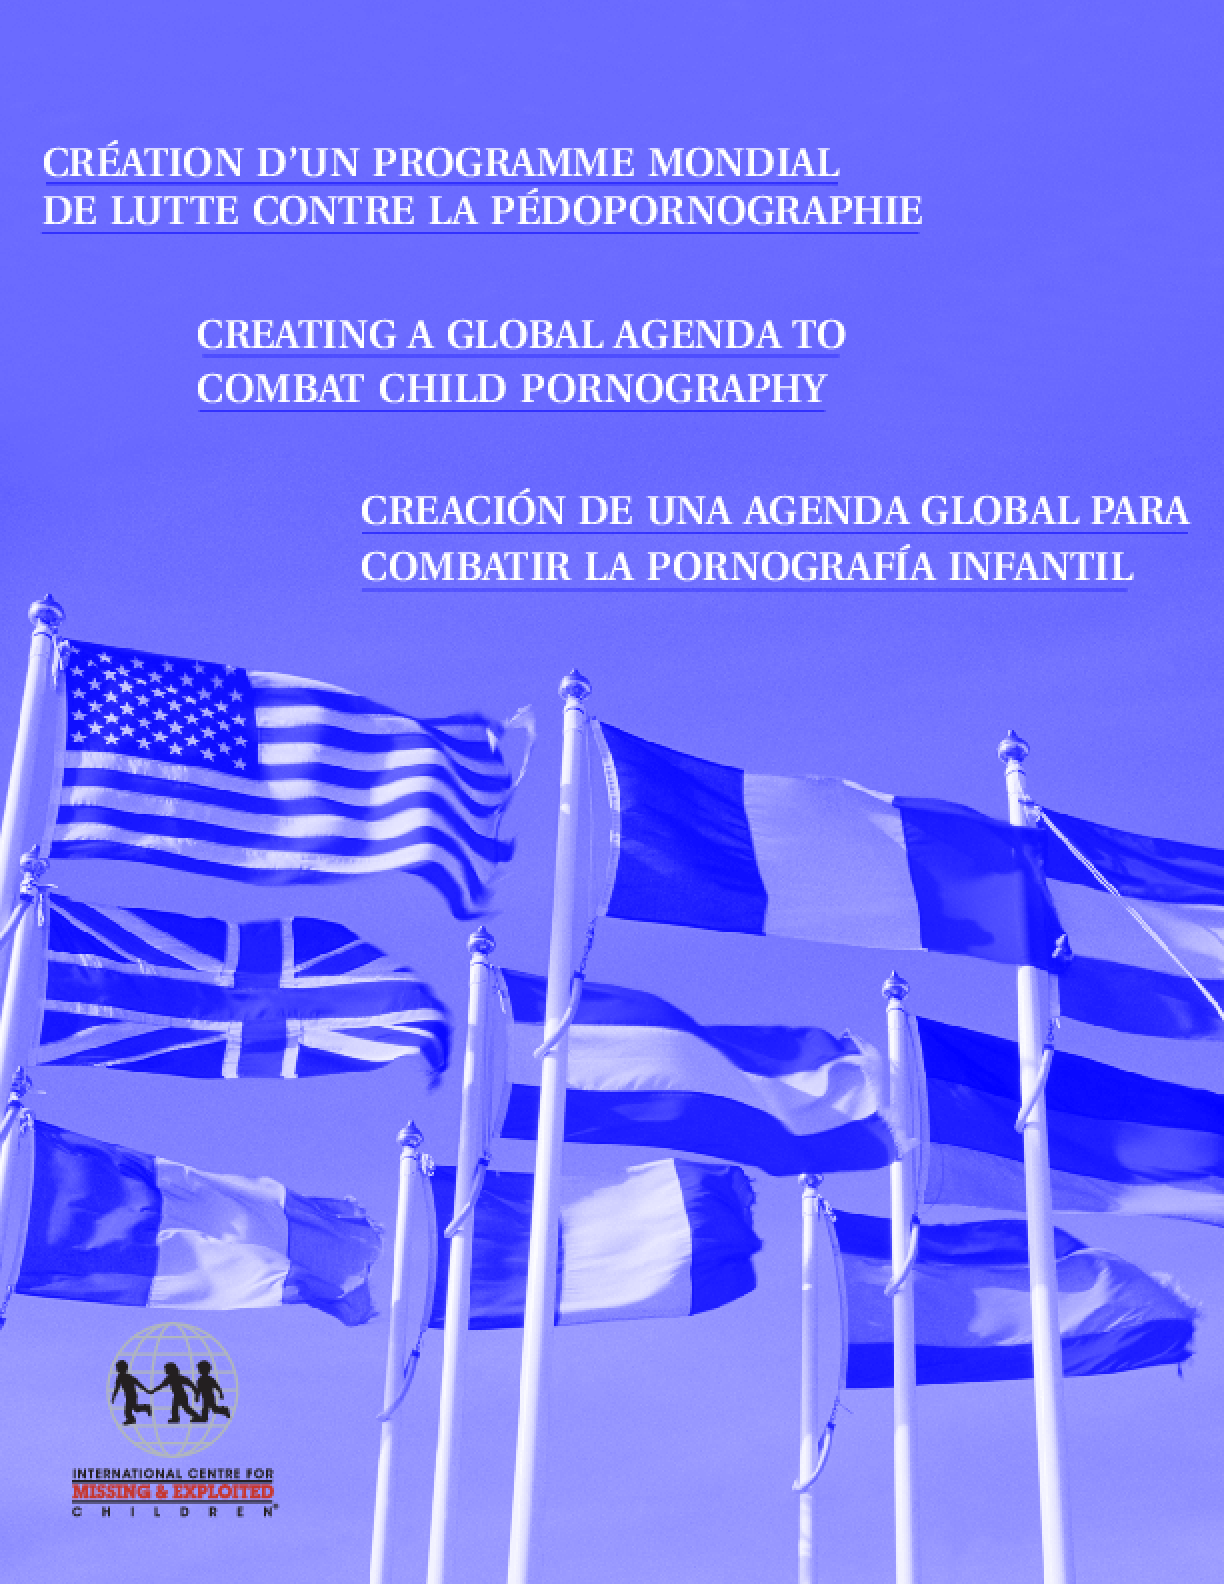 Creating A Global Agenda to Combat Child Pornography